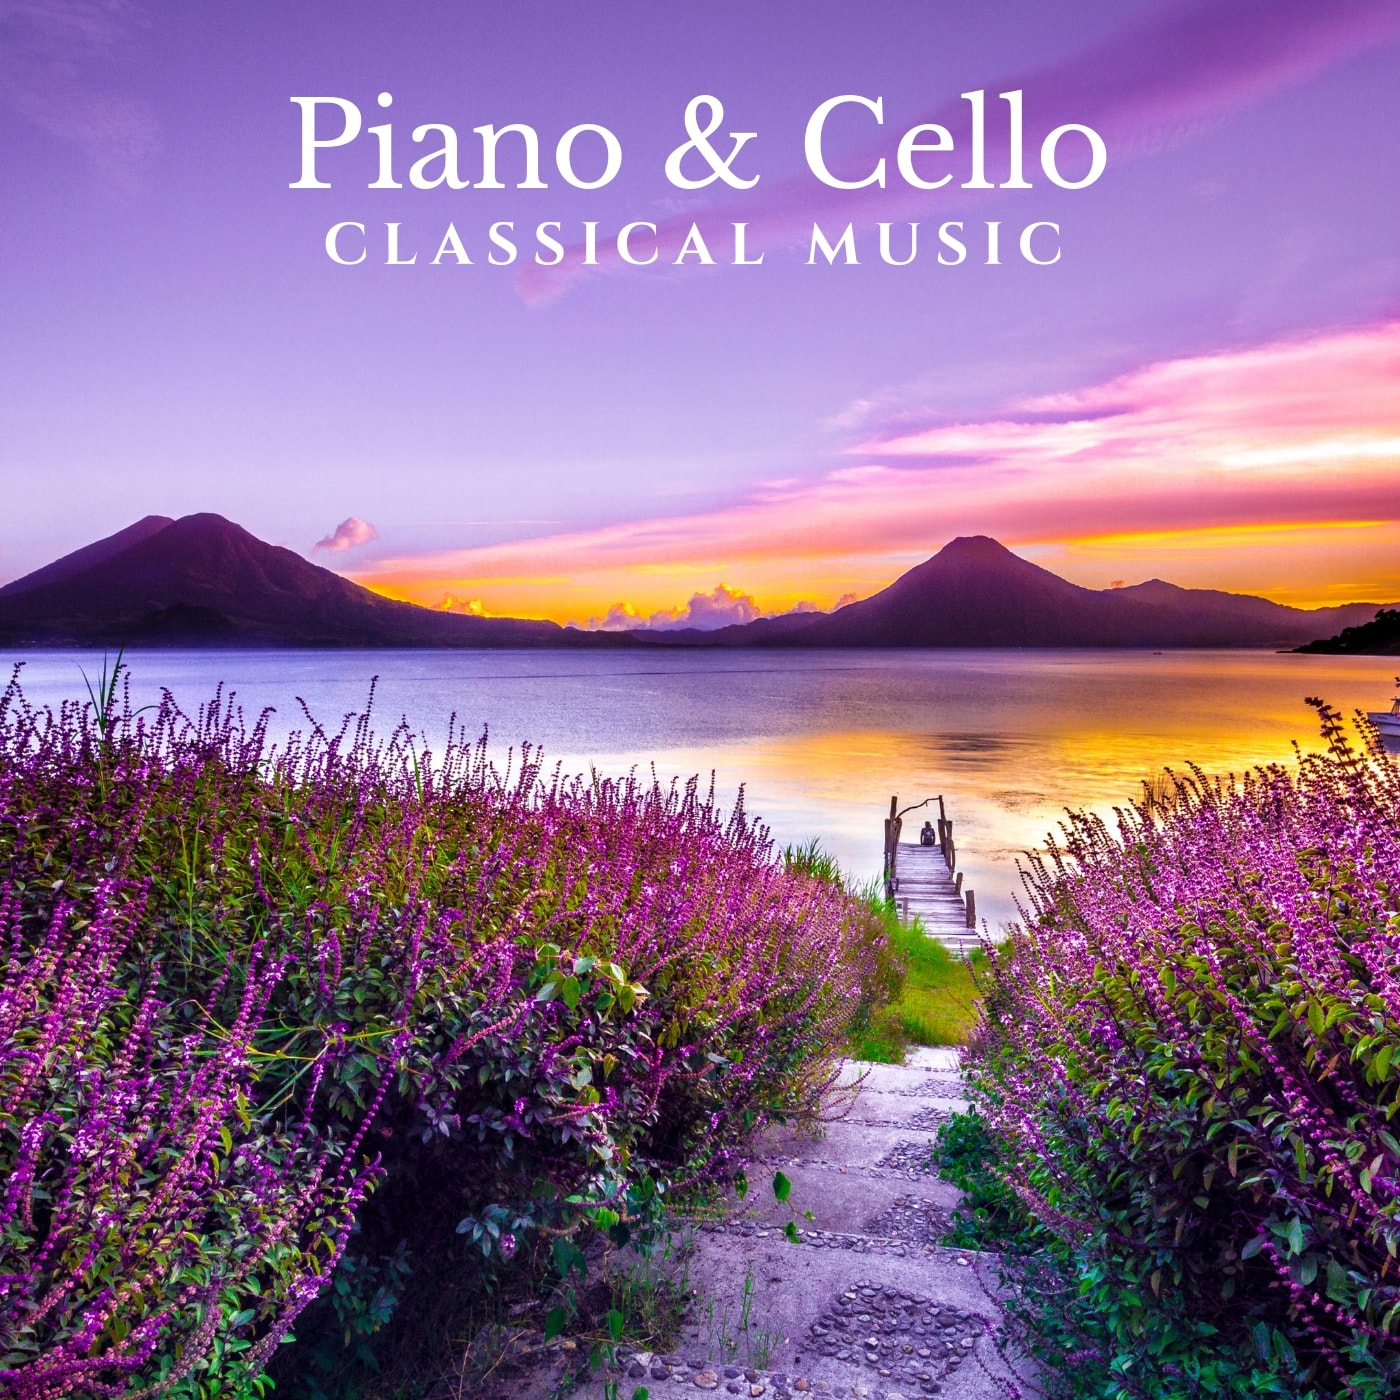 Piano & Cello